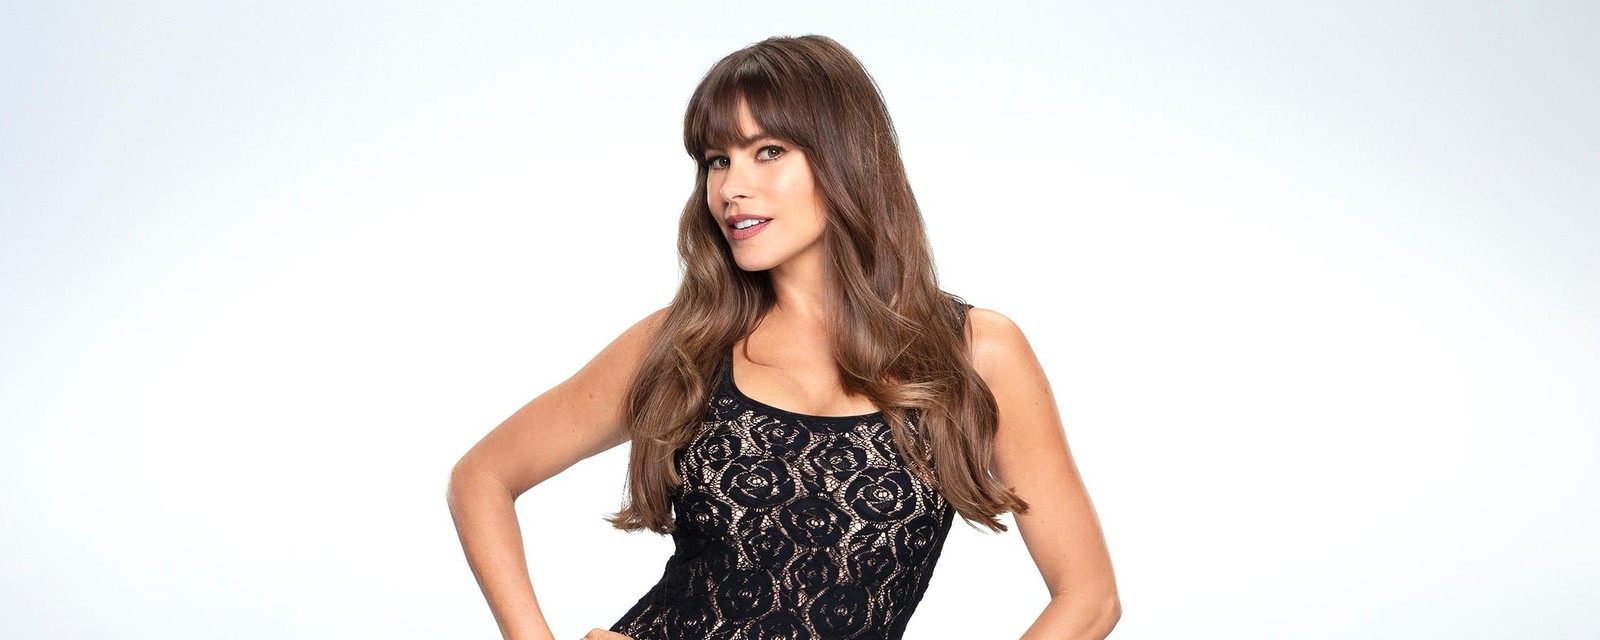 Sofia vergara on modern family